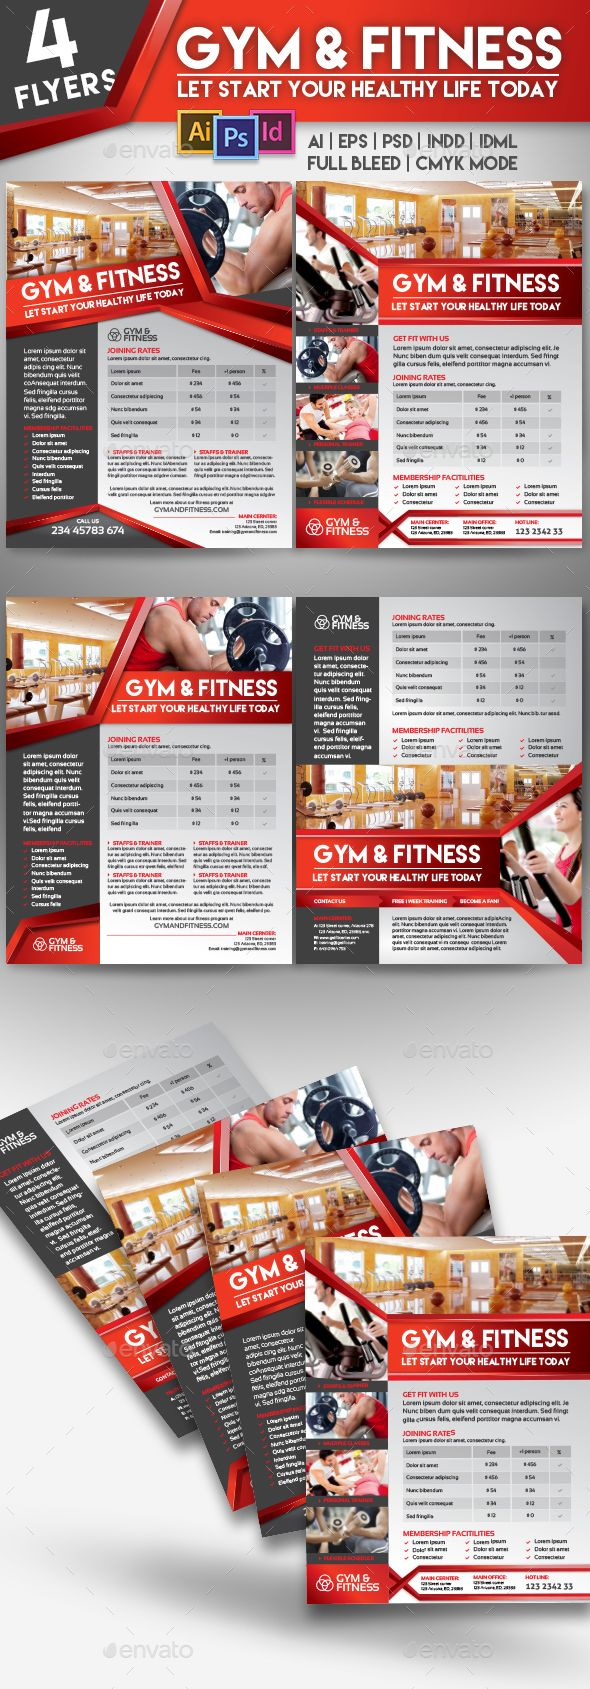 Fitness Gym Center  Flyer Templates  Gym Center Flyer Template